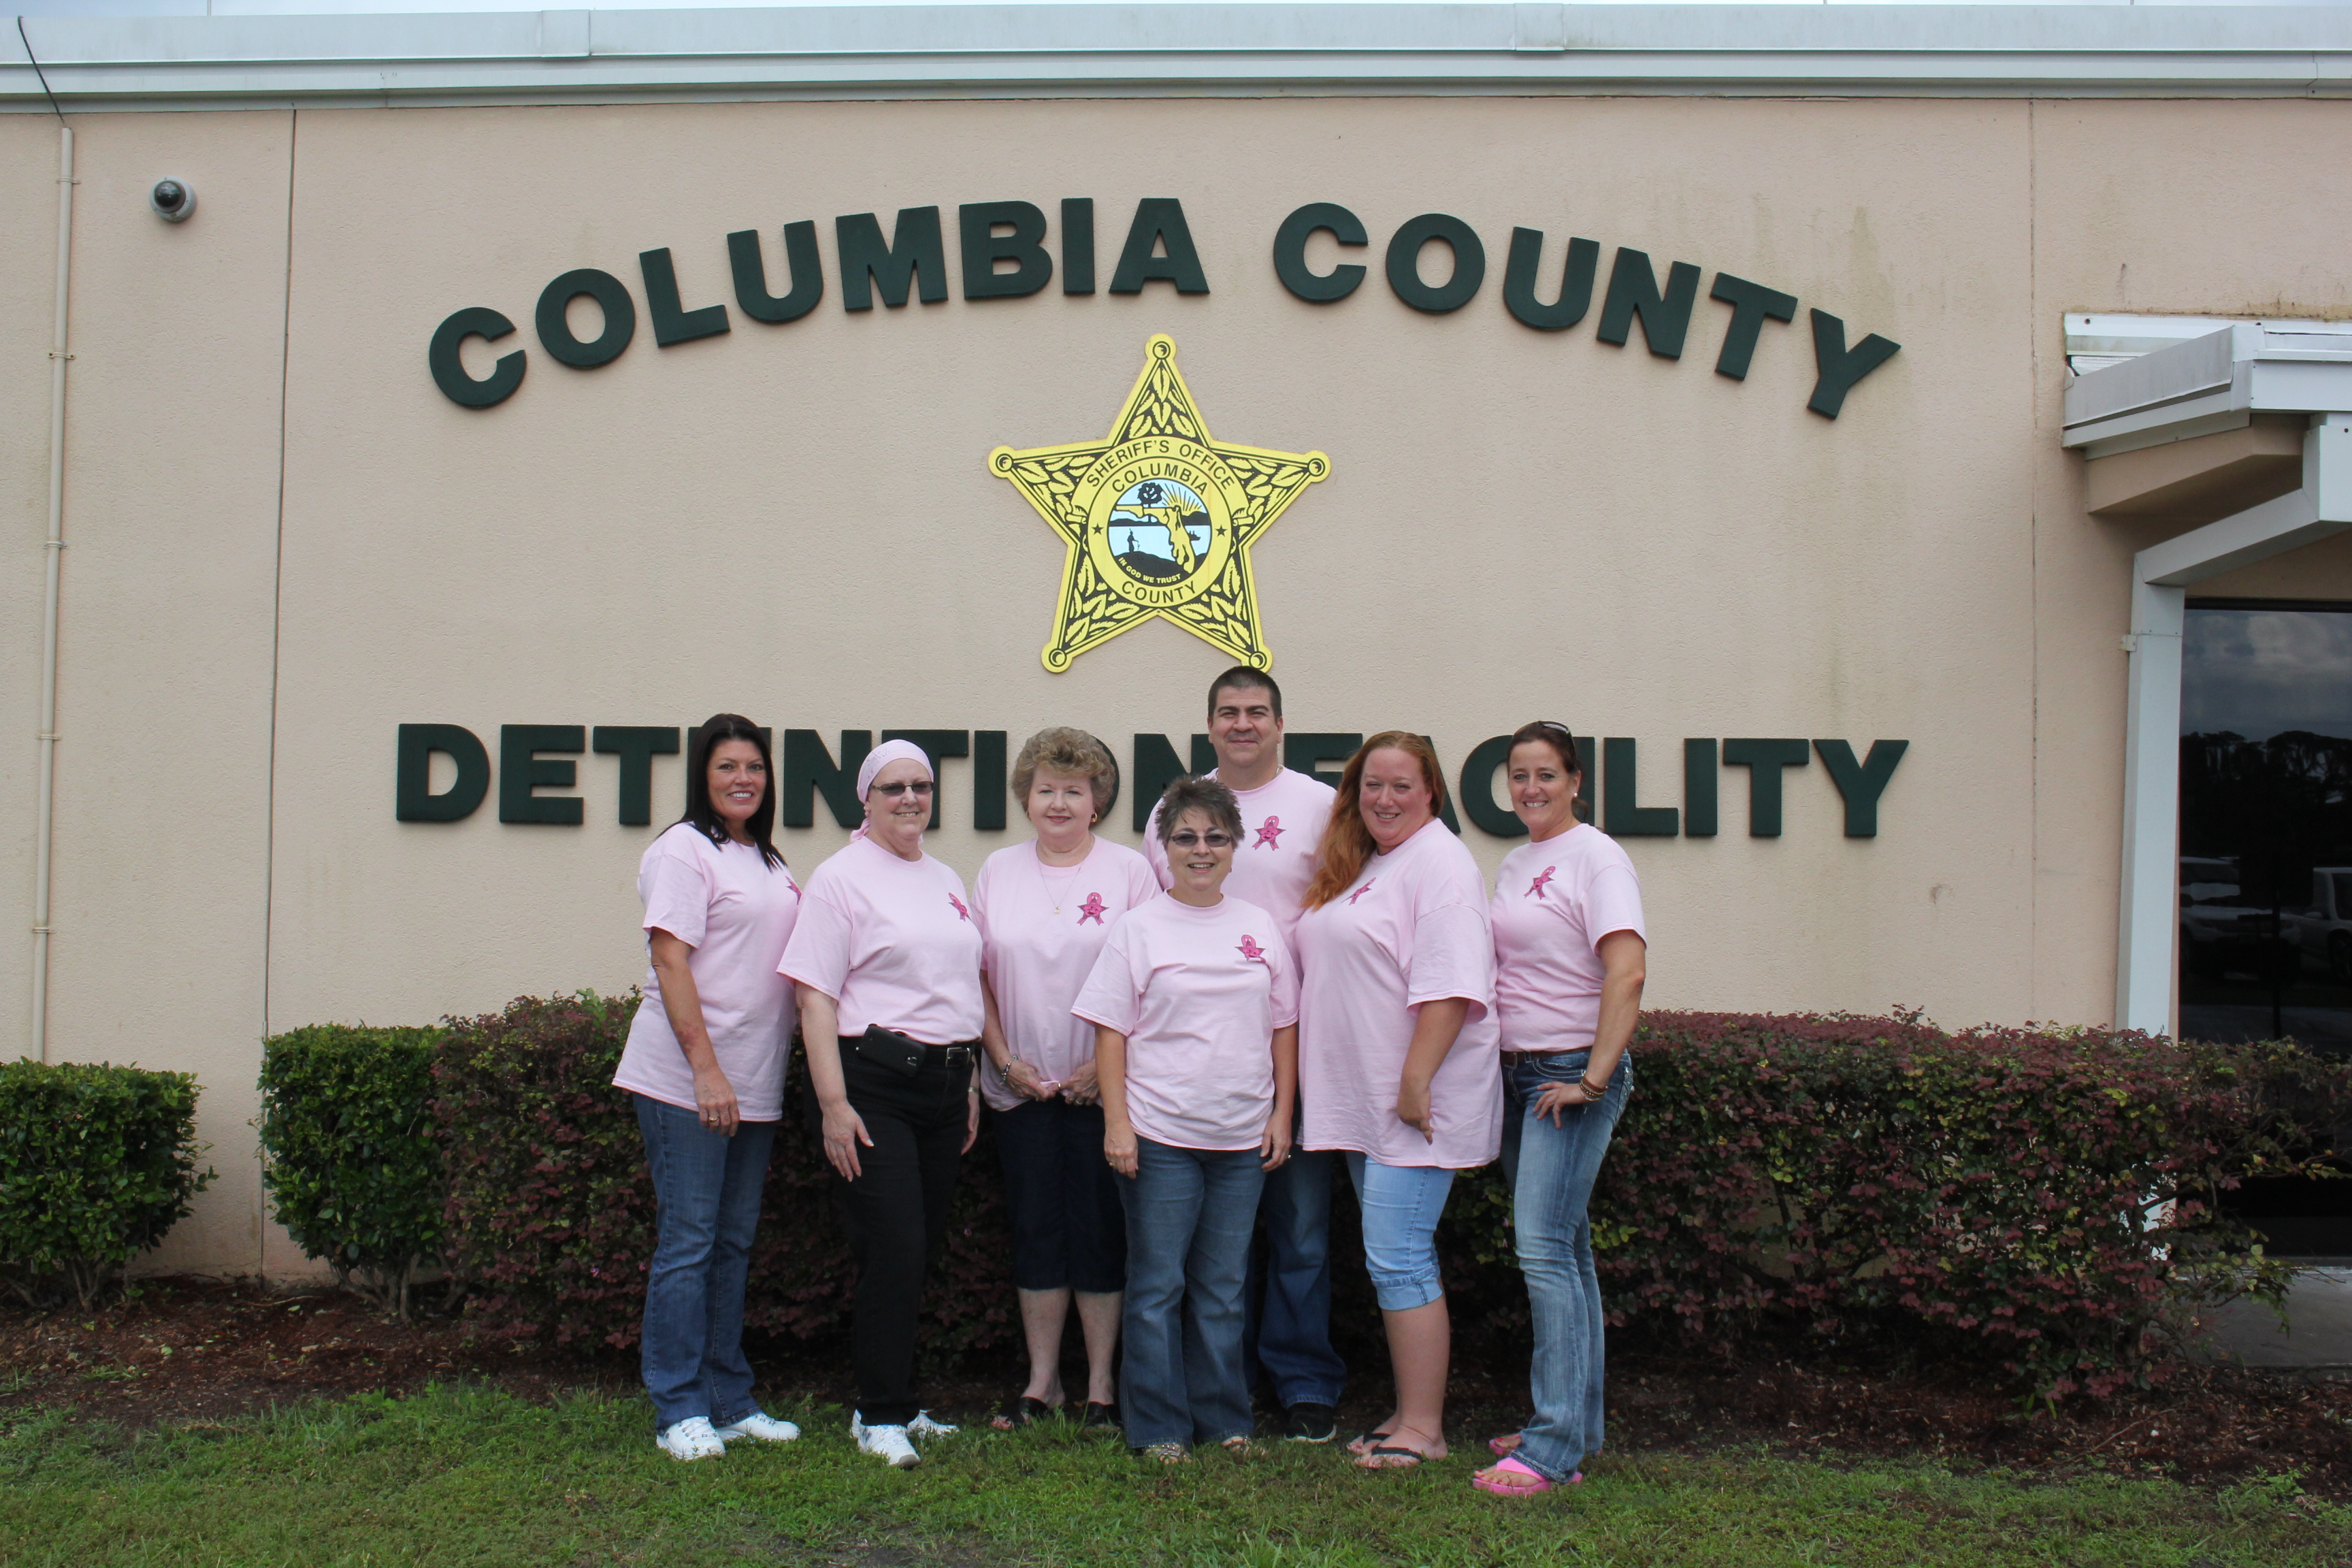 The jail folks proudly wearing pink!!!